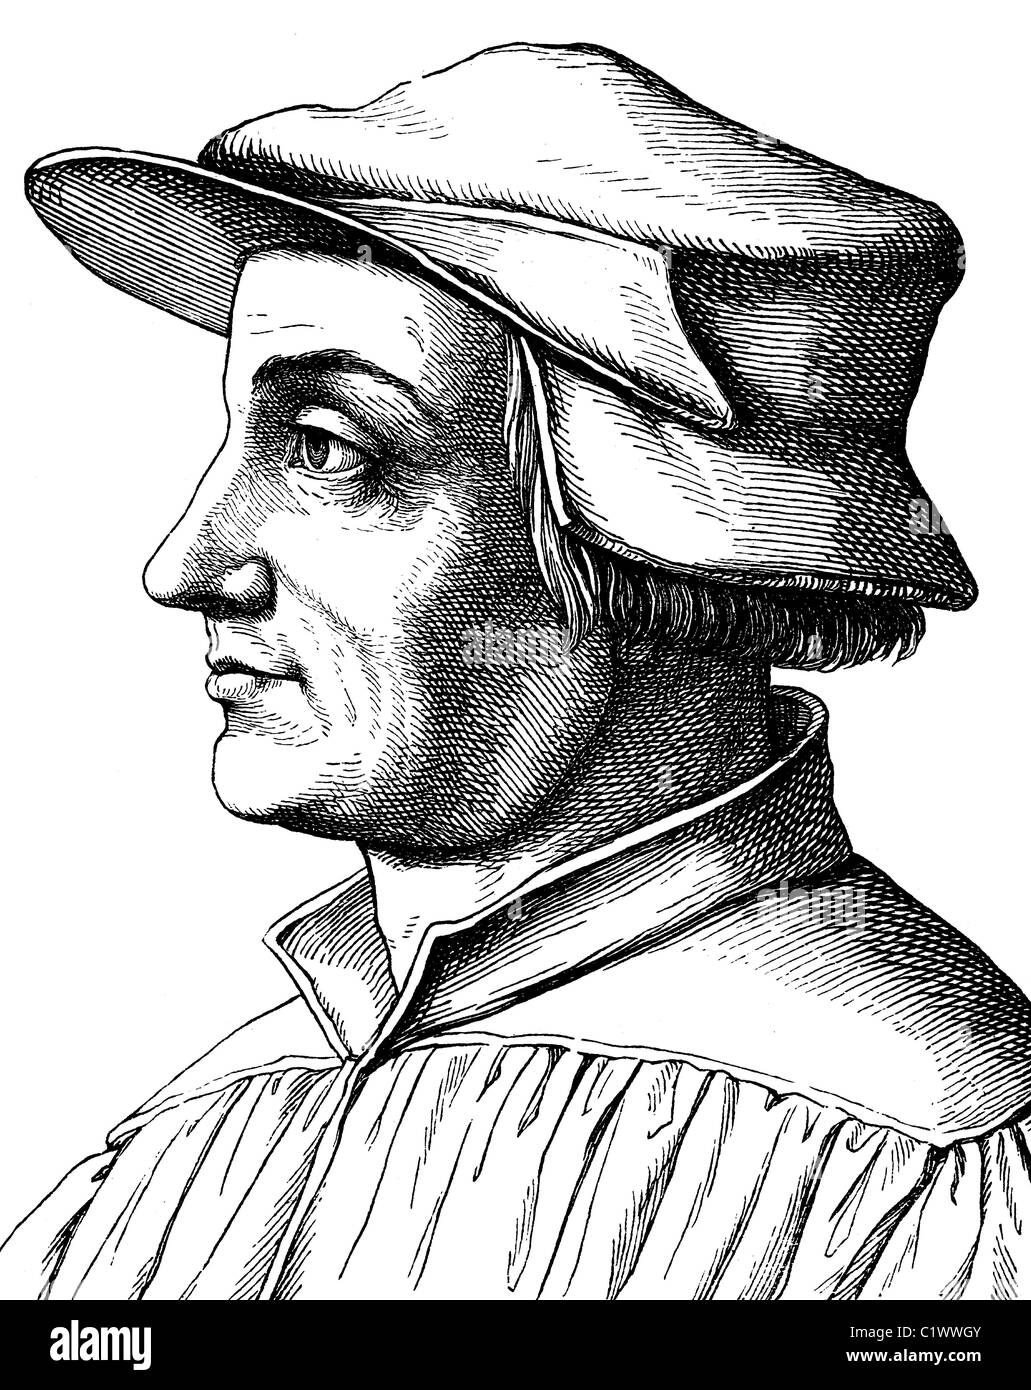 Digital improved image of Huldrich Zwingli or Huldreich Zwingli, Zurich reformer, historical illustration, portrait, - Stock Image